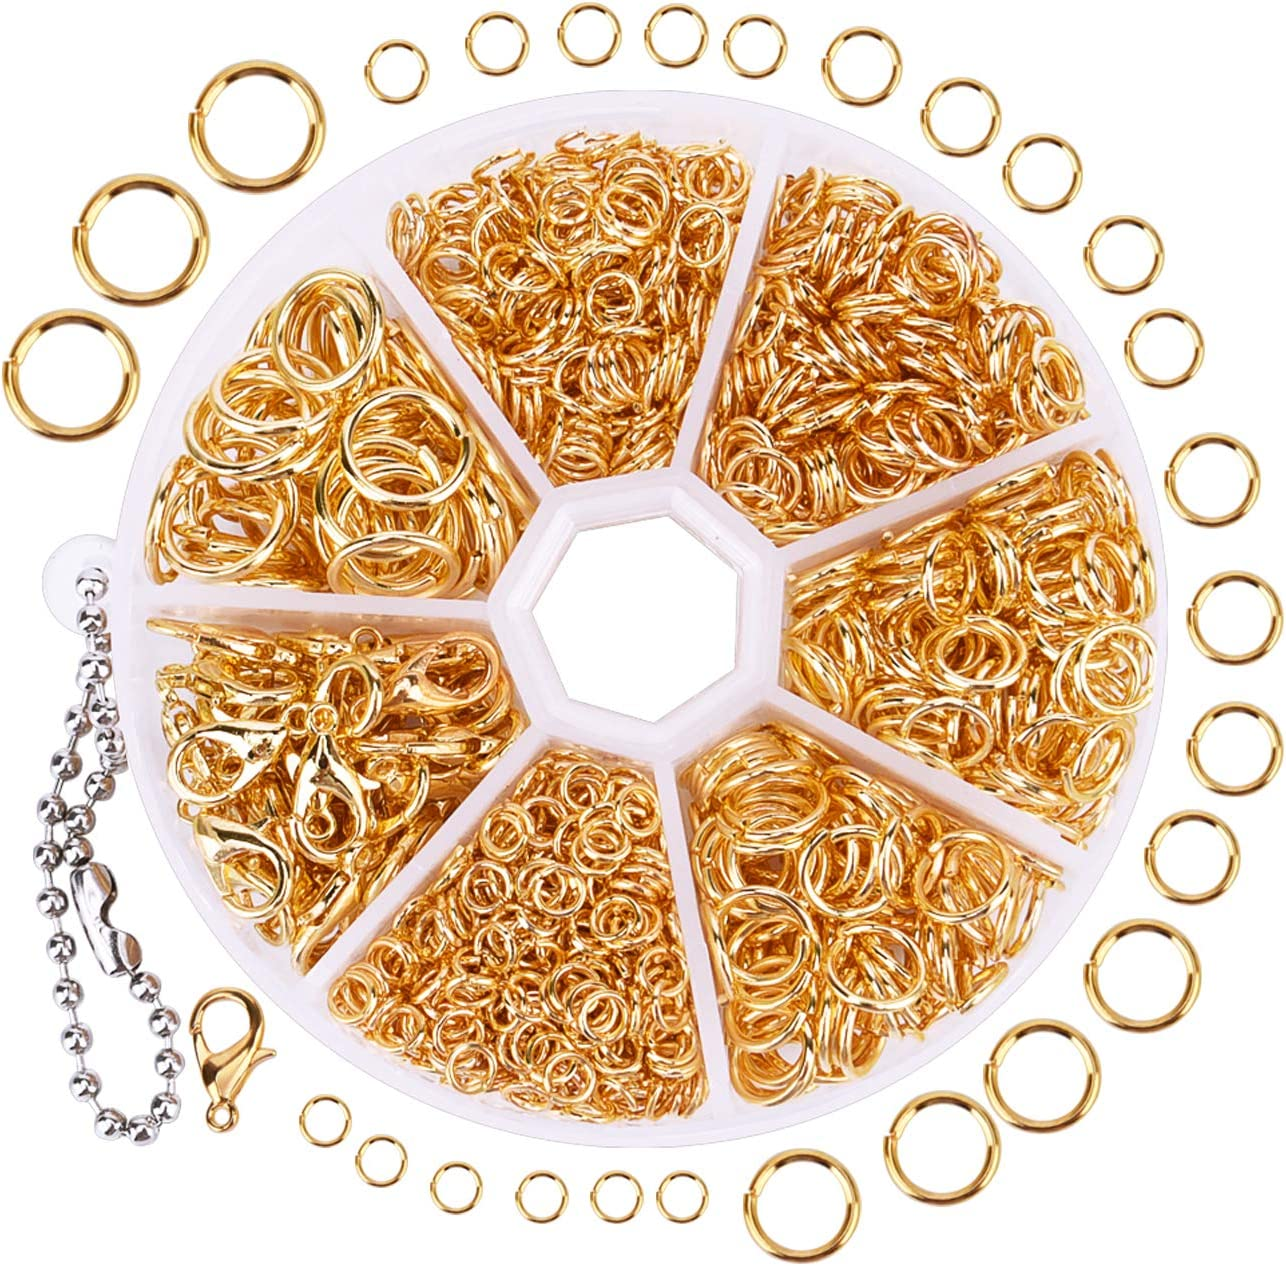 90pcs Golden Color Brass Open 6mm  Nickel Free Jump Rings For Jewelry DIY Making